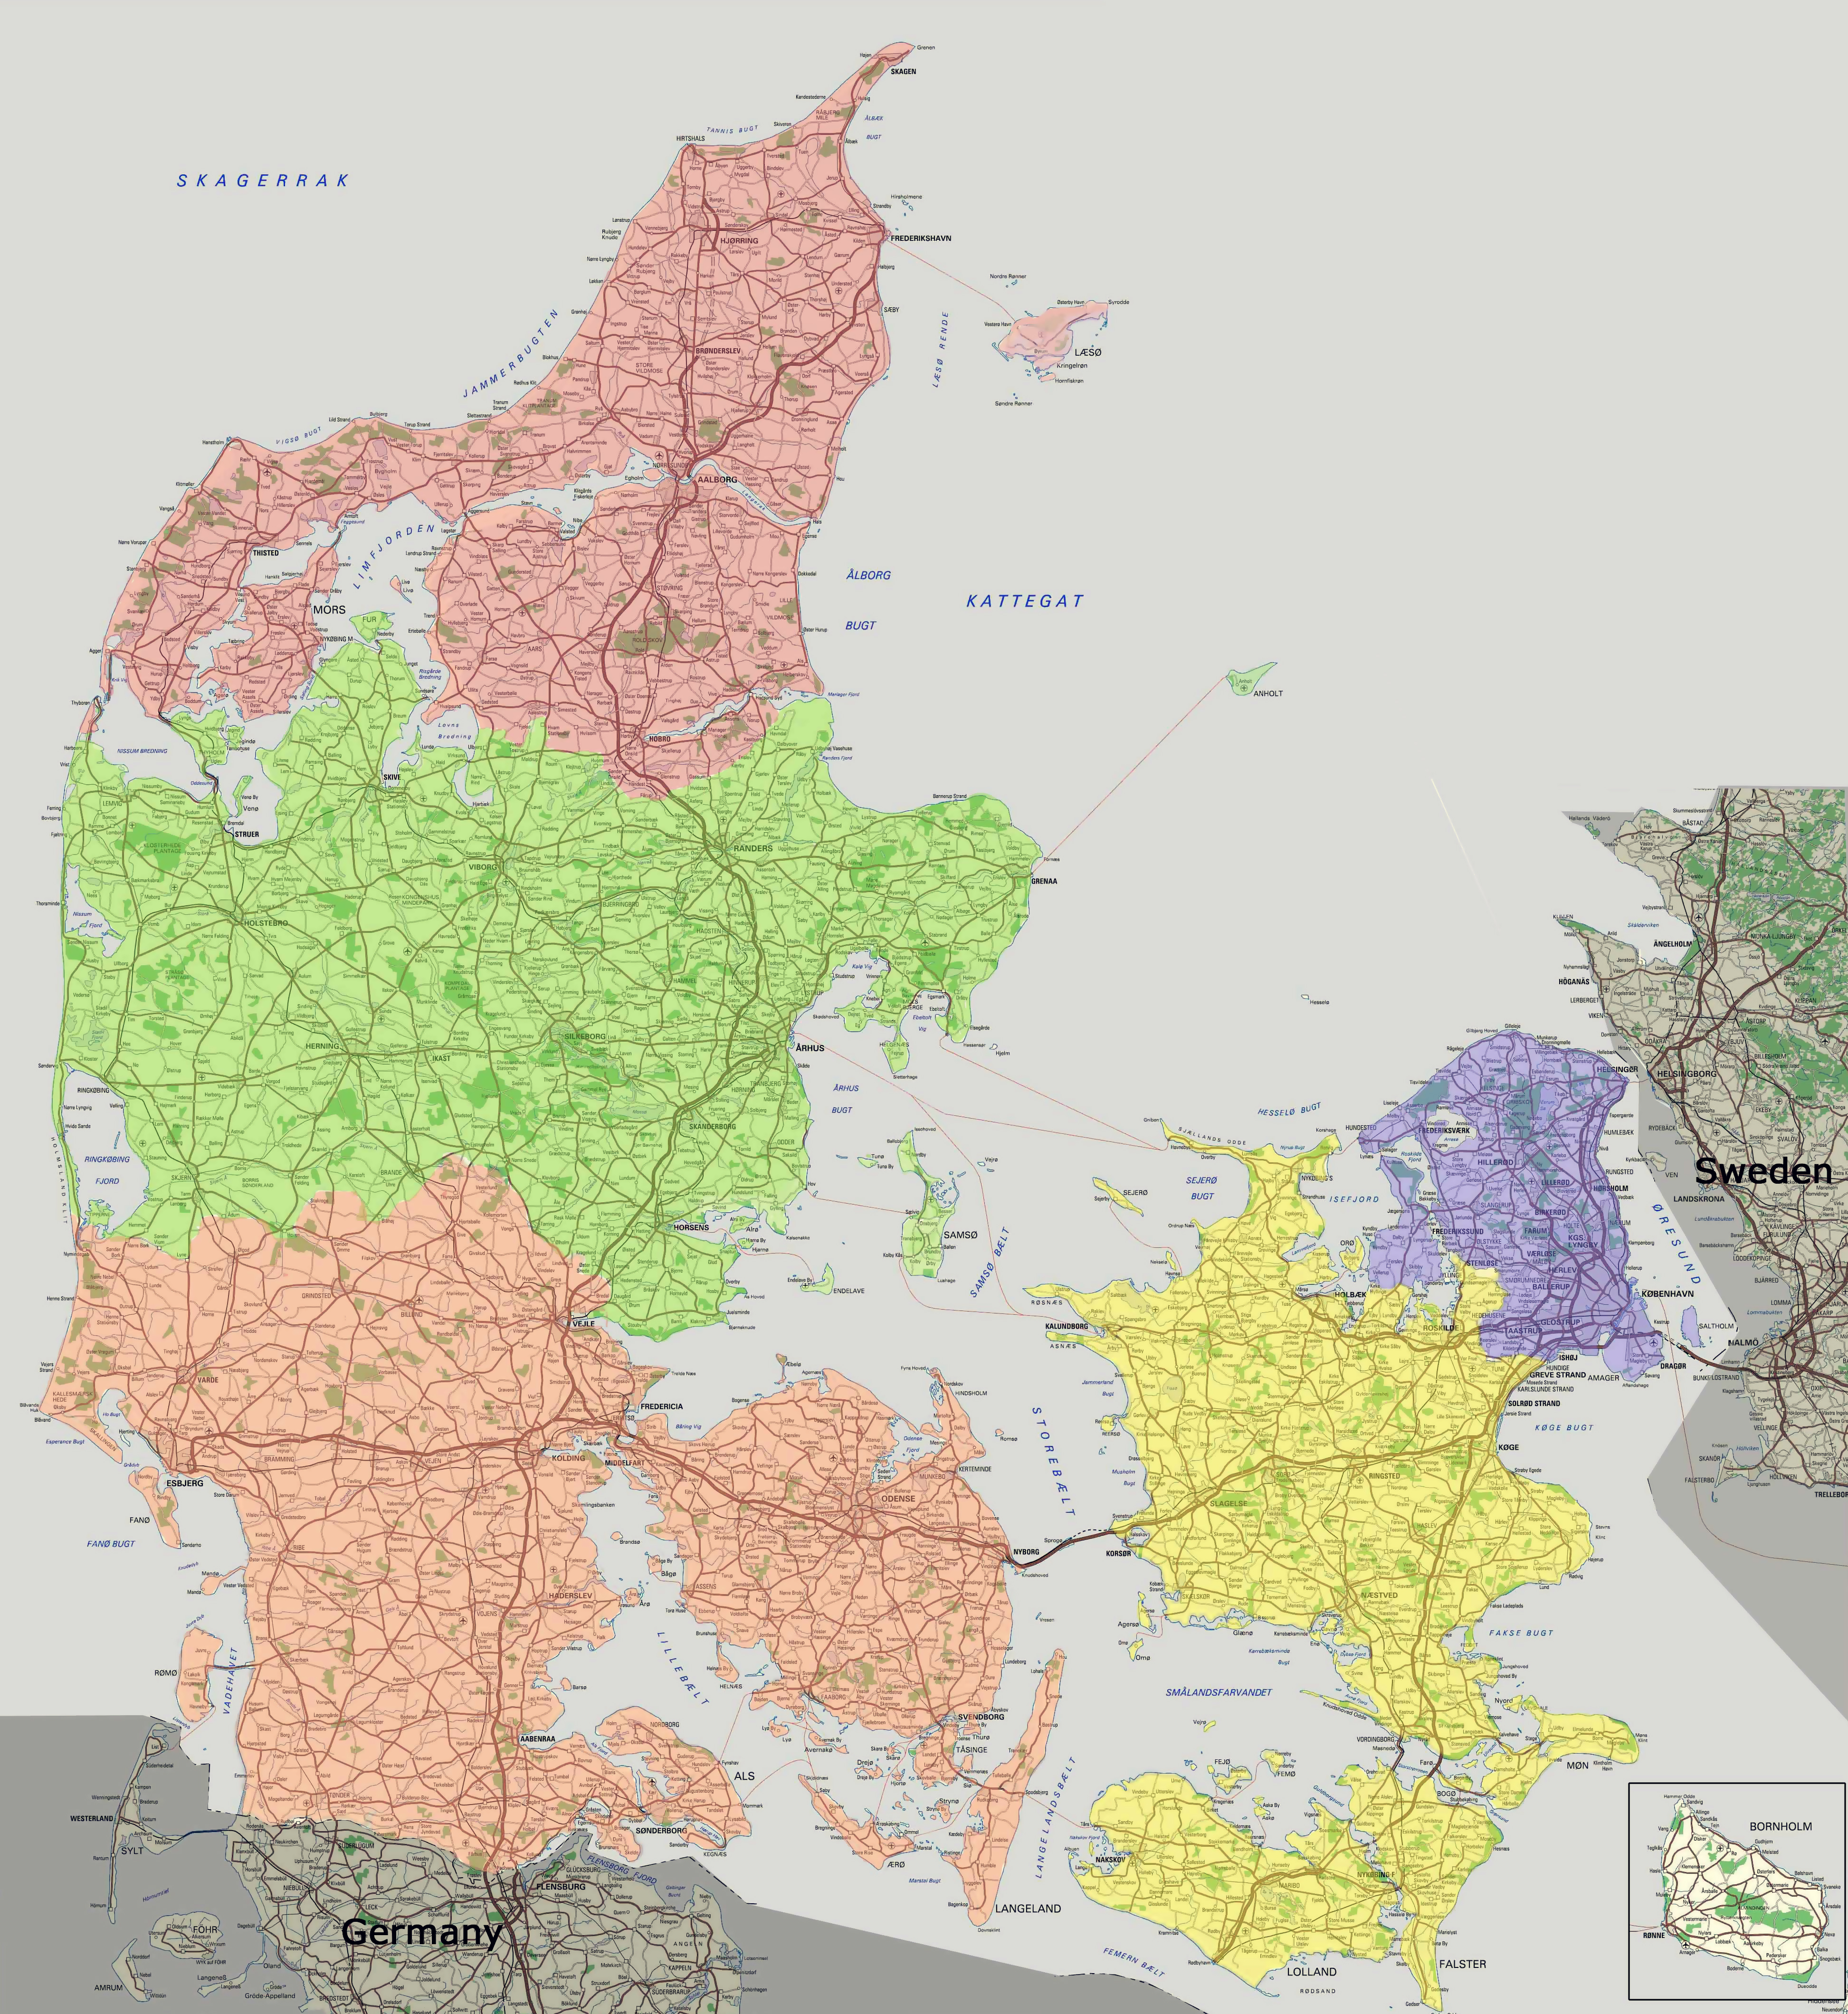 large scale detailed road map of denmark with all cities and